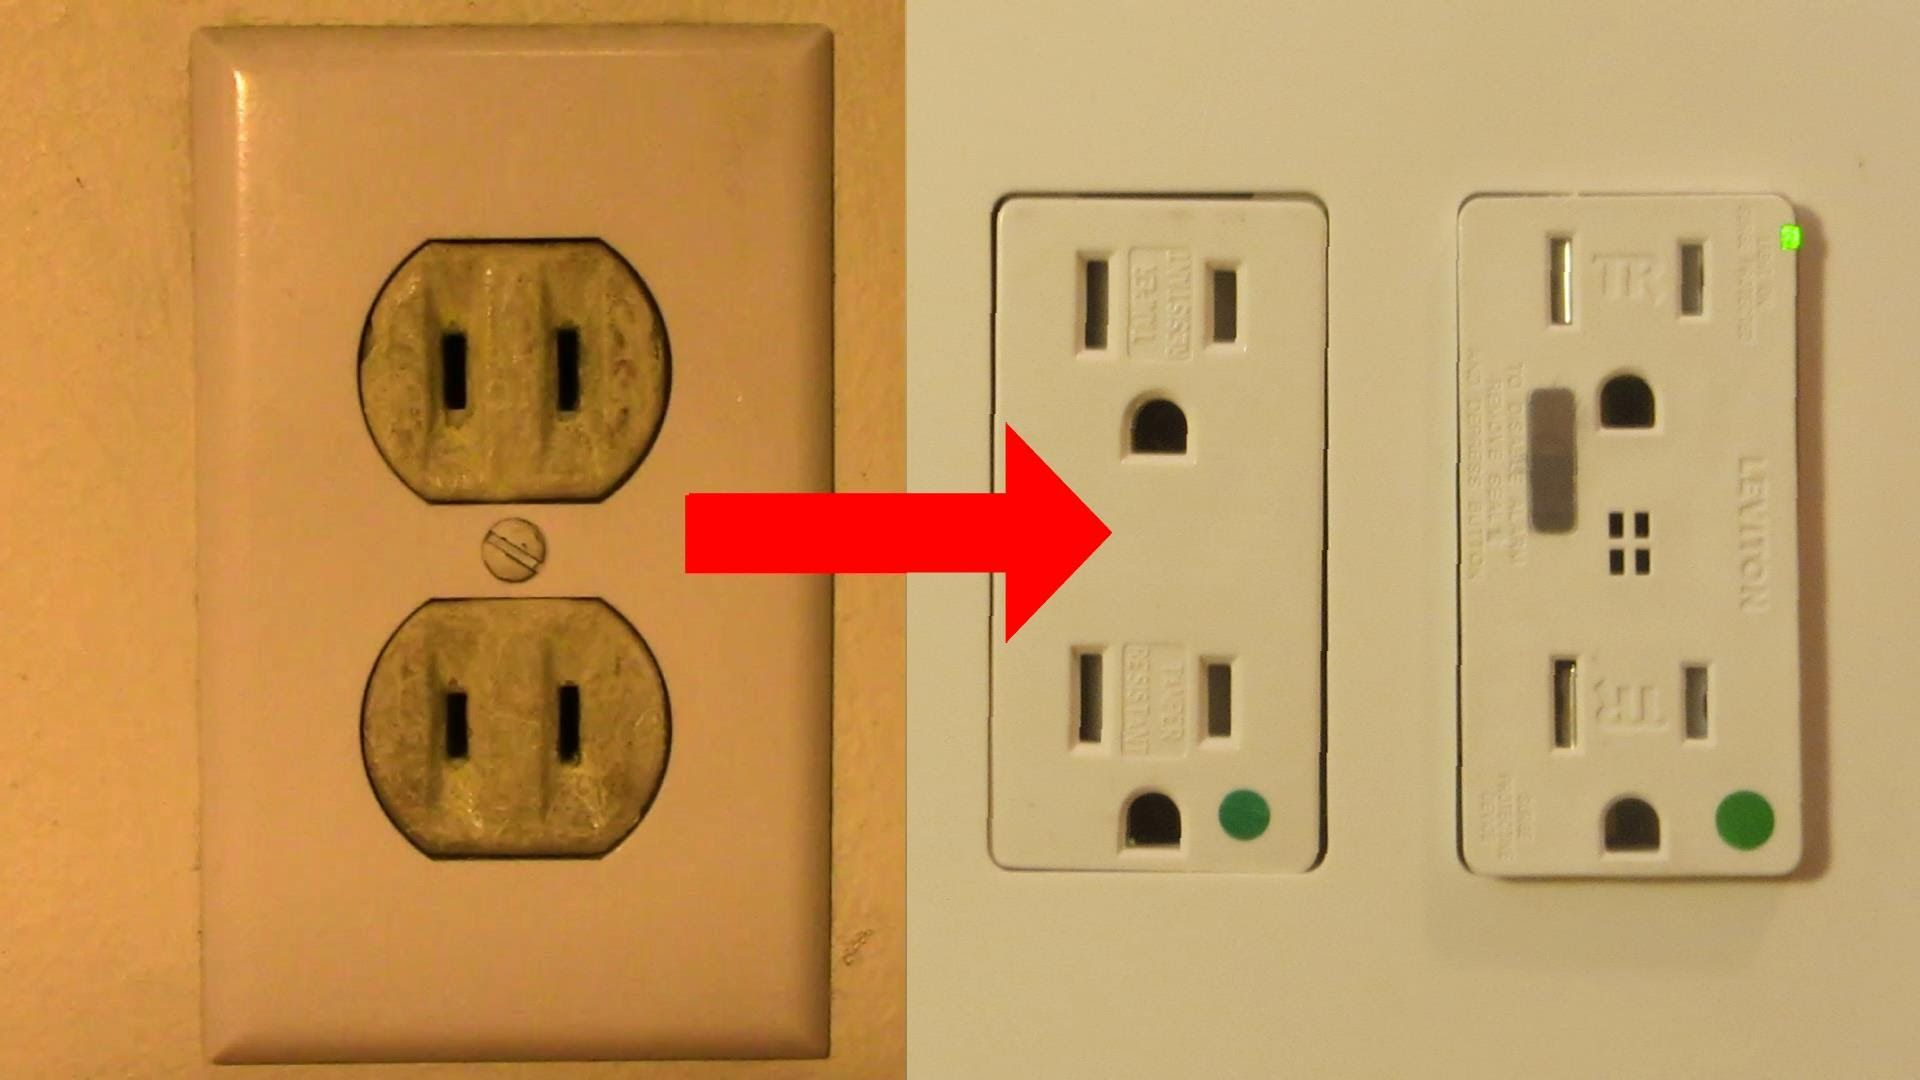 replace a 2 prong outlet with double duplex grounded receptacles [ 1920 x 1080 Pixel ]